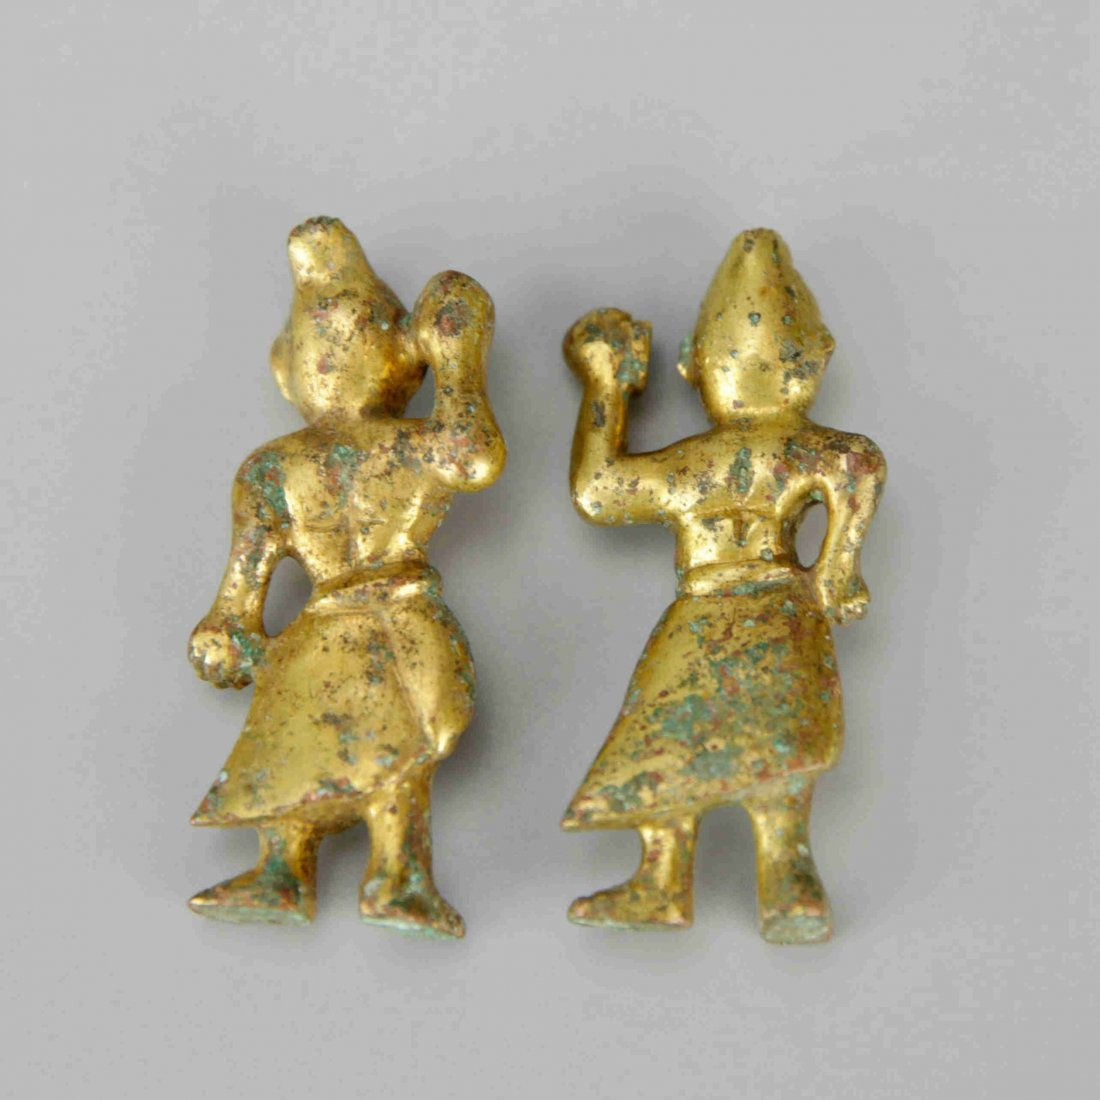 Pair of Small Chinese Gilt-Bronze Figures - 2